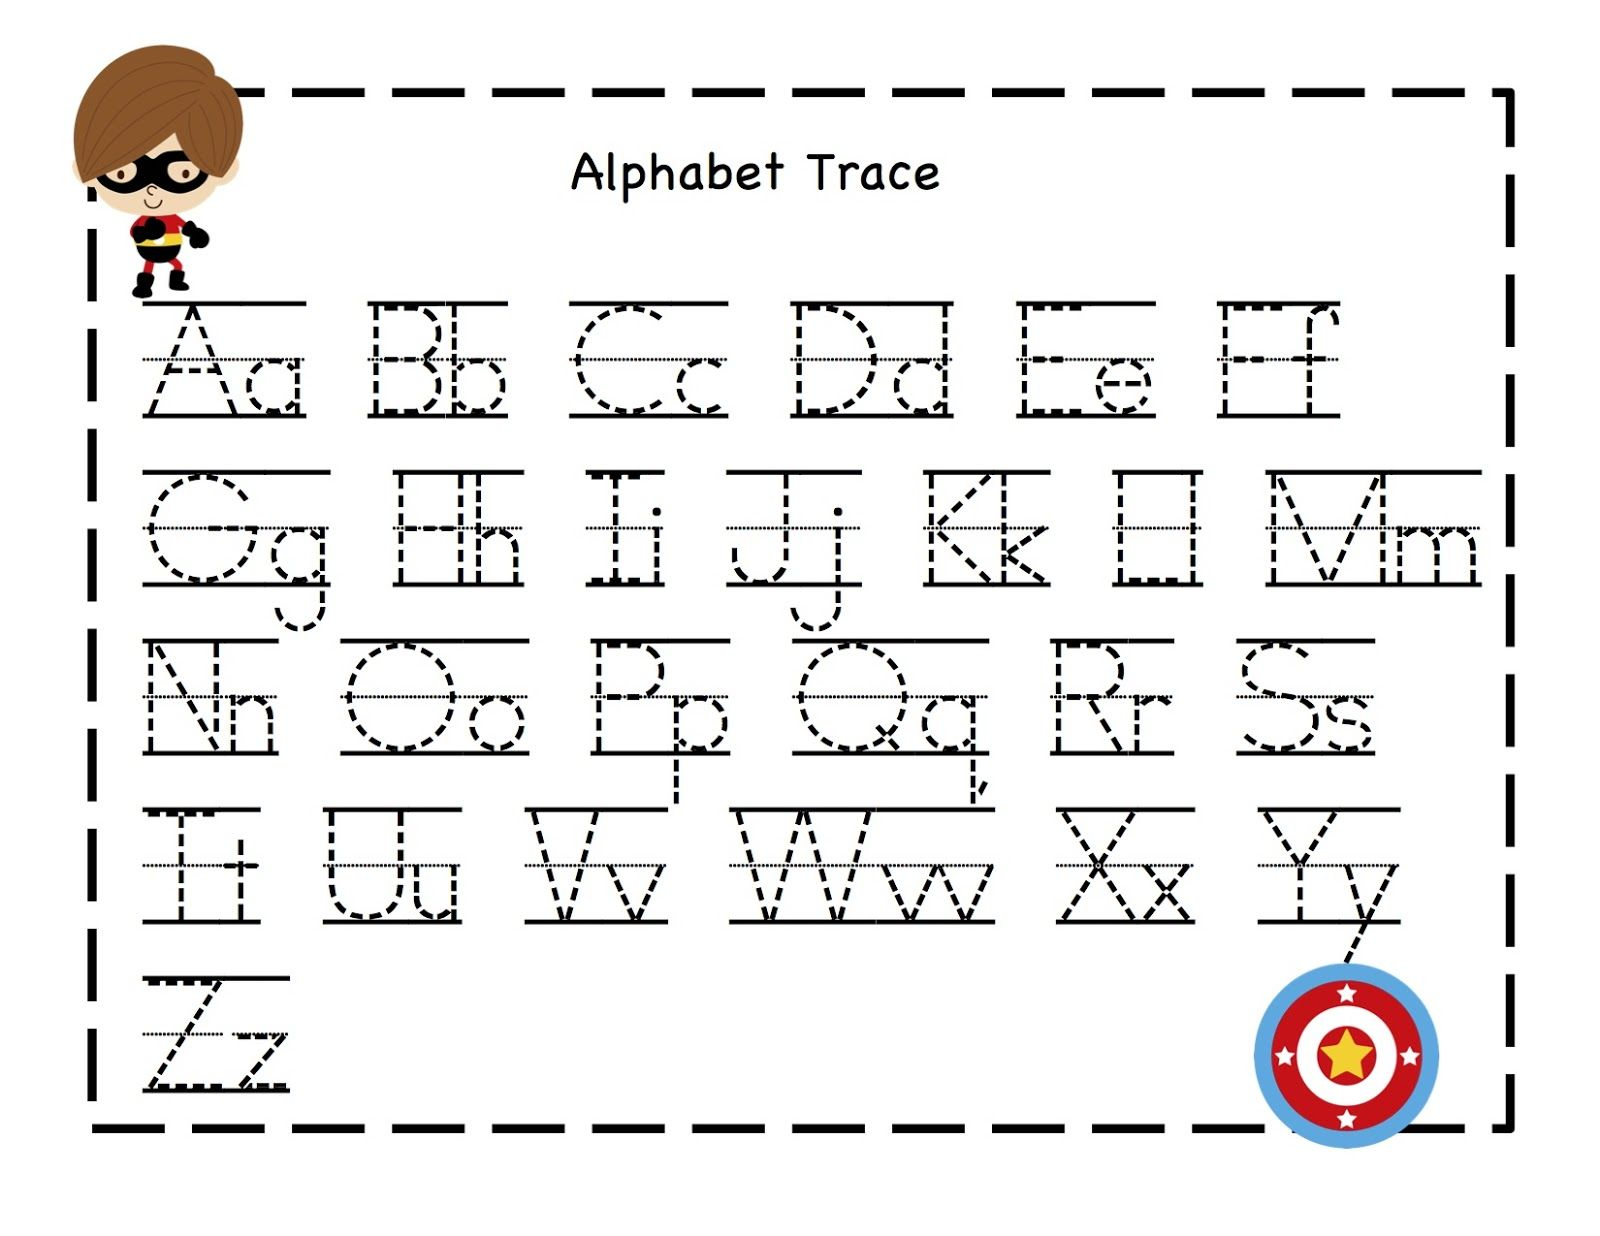 hight resolution of ABC Tracing Sheets for Preschool Kids   Alphabet preschool